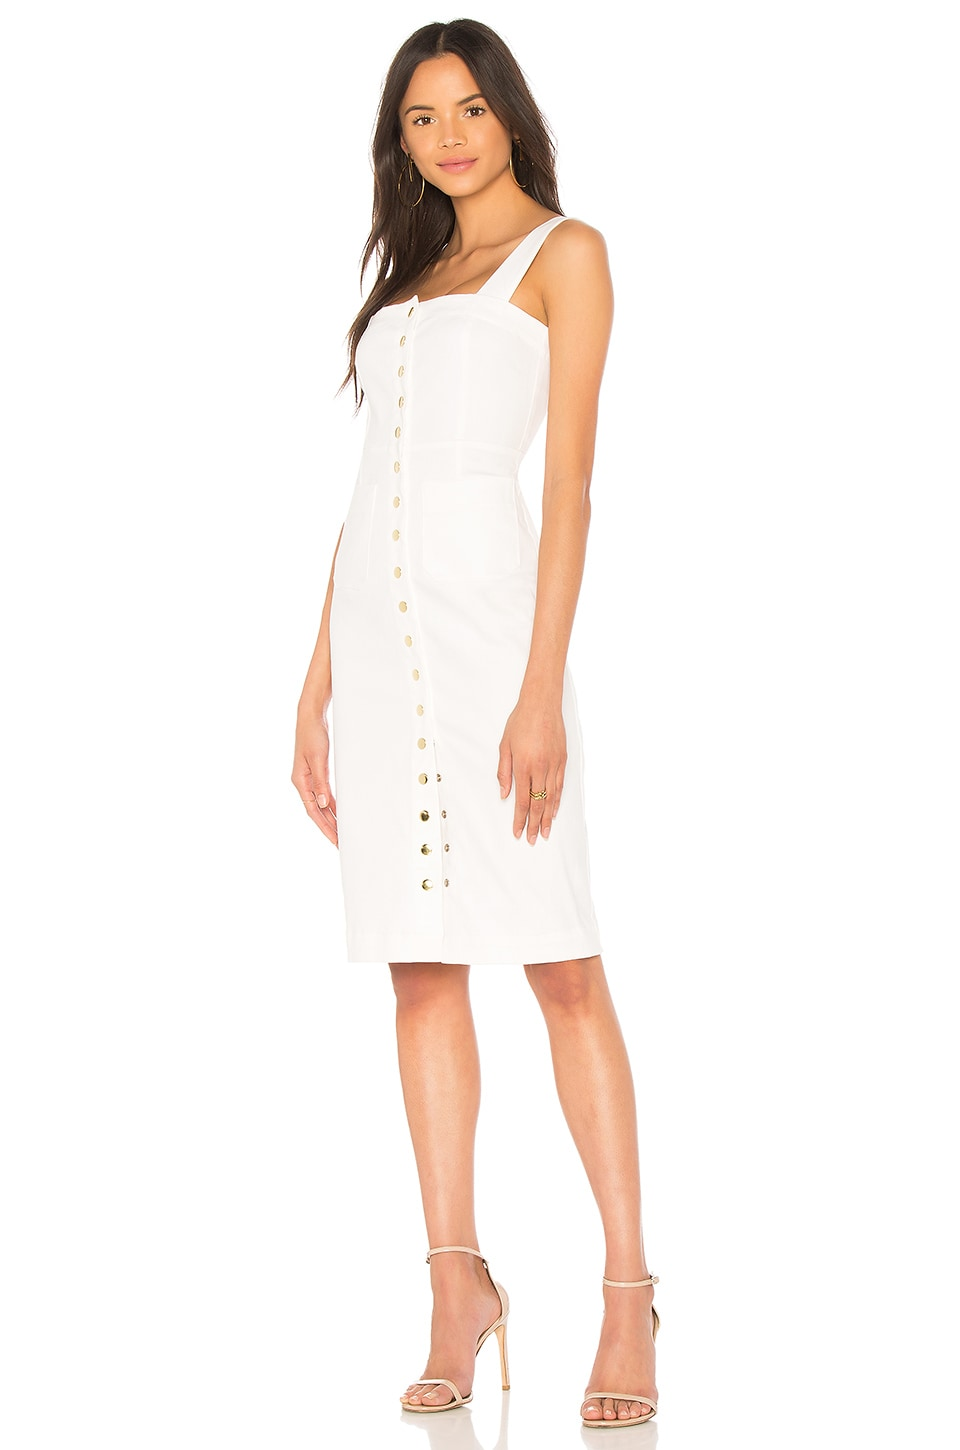 Clayton Candace Dress in White Denim